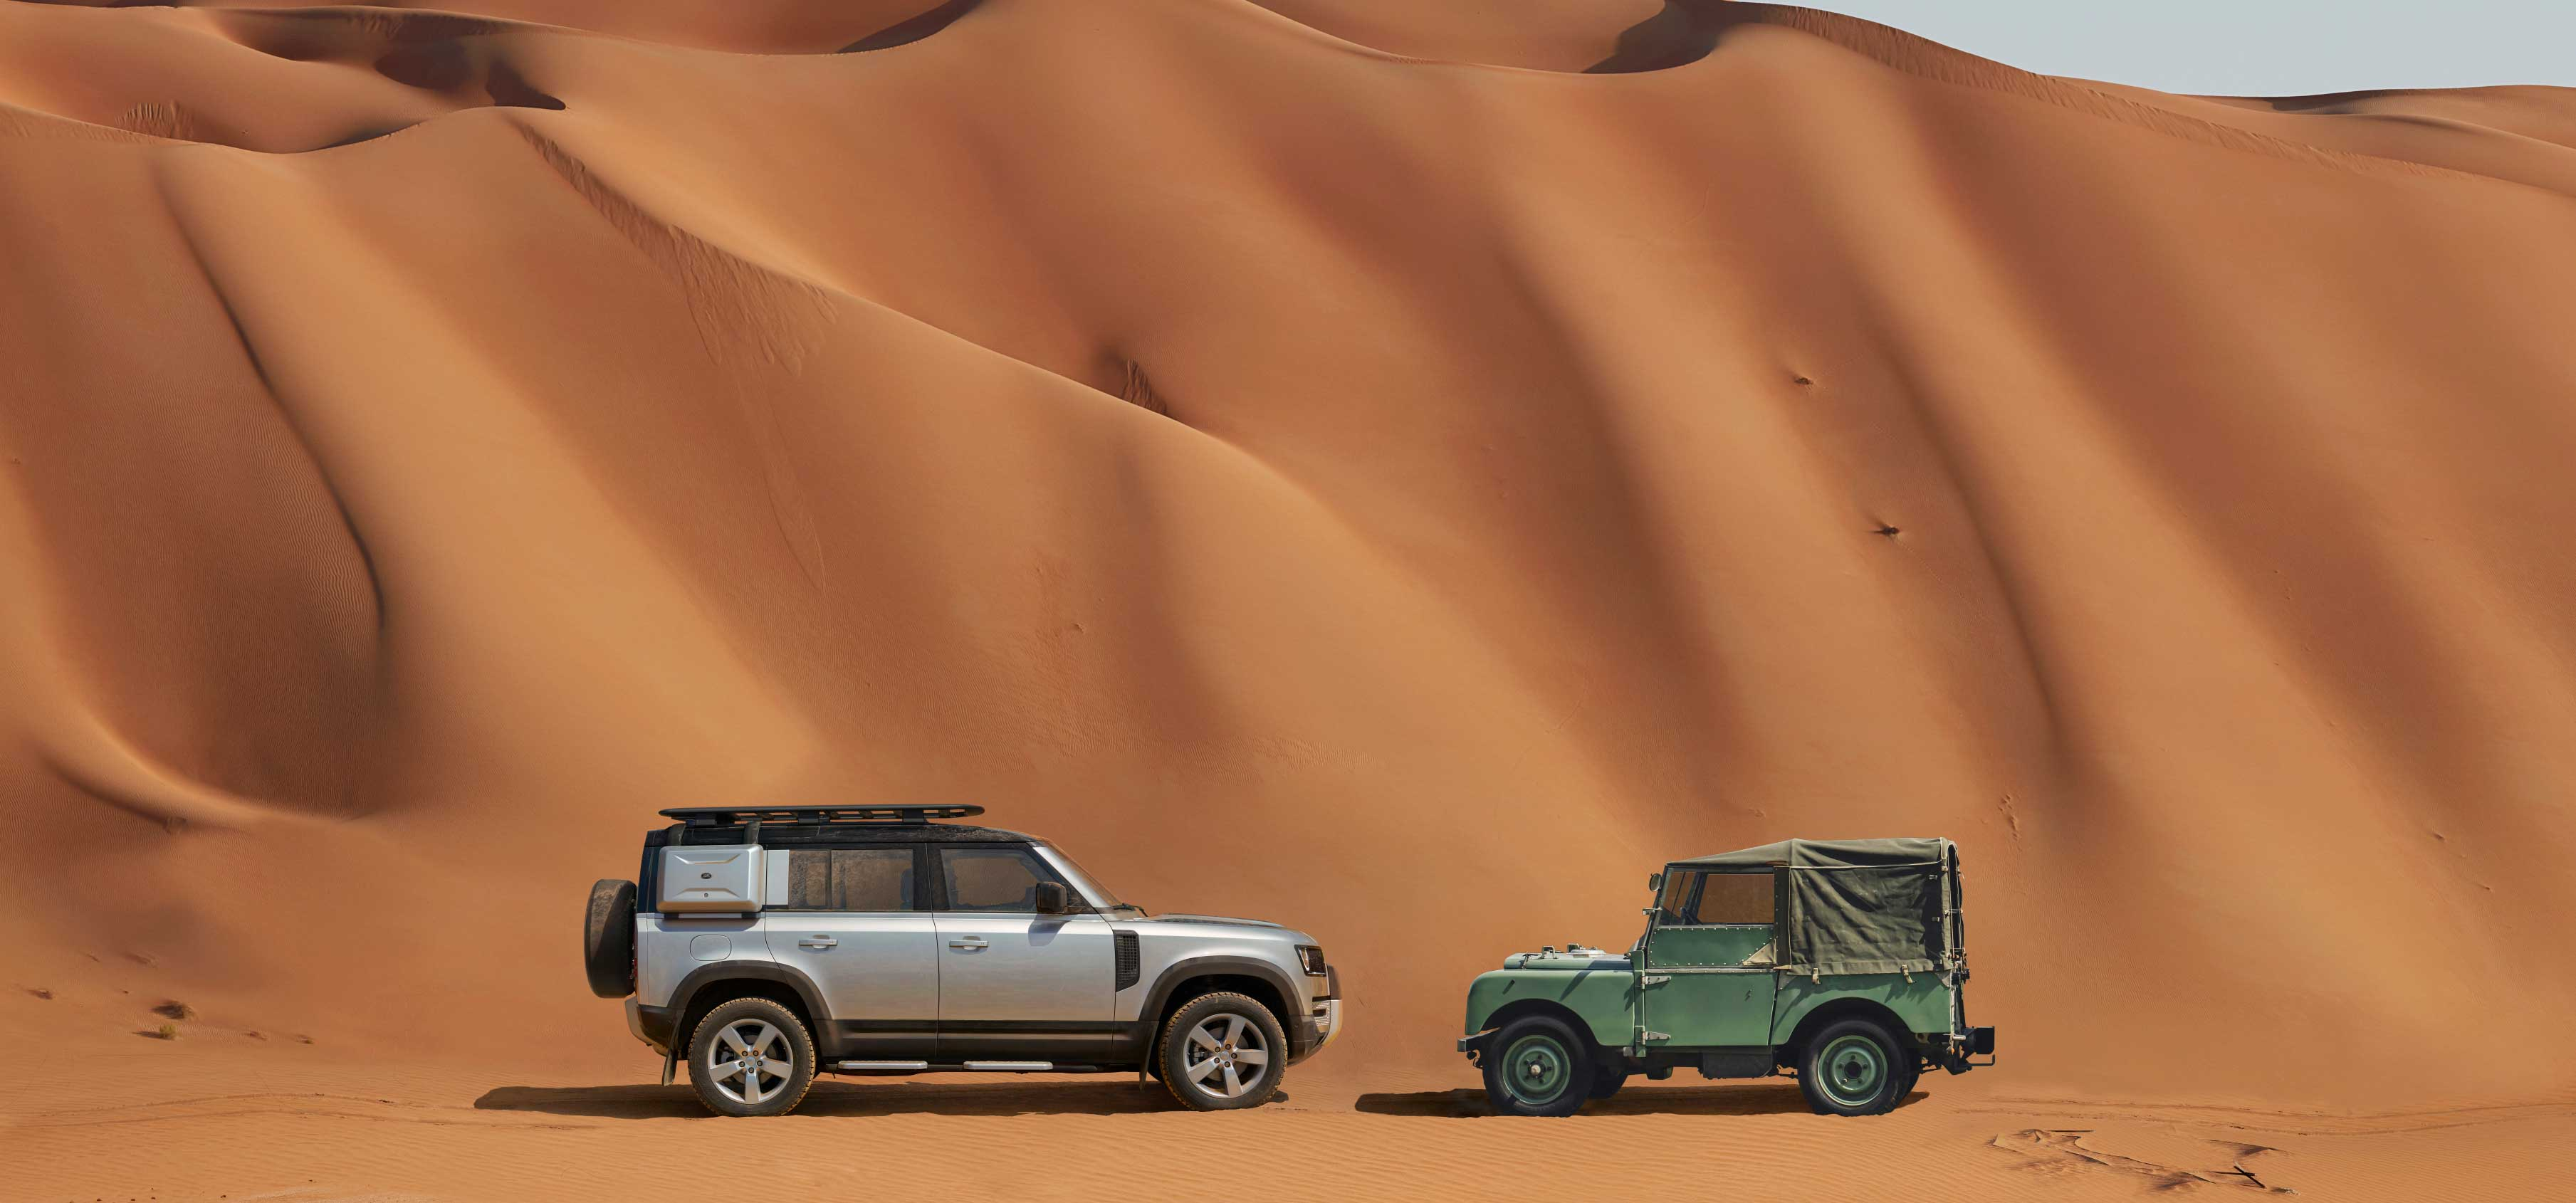 Select Al Tayer Motors and Premier Motors Land Rover showrooms to feature Defender only display